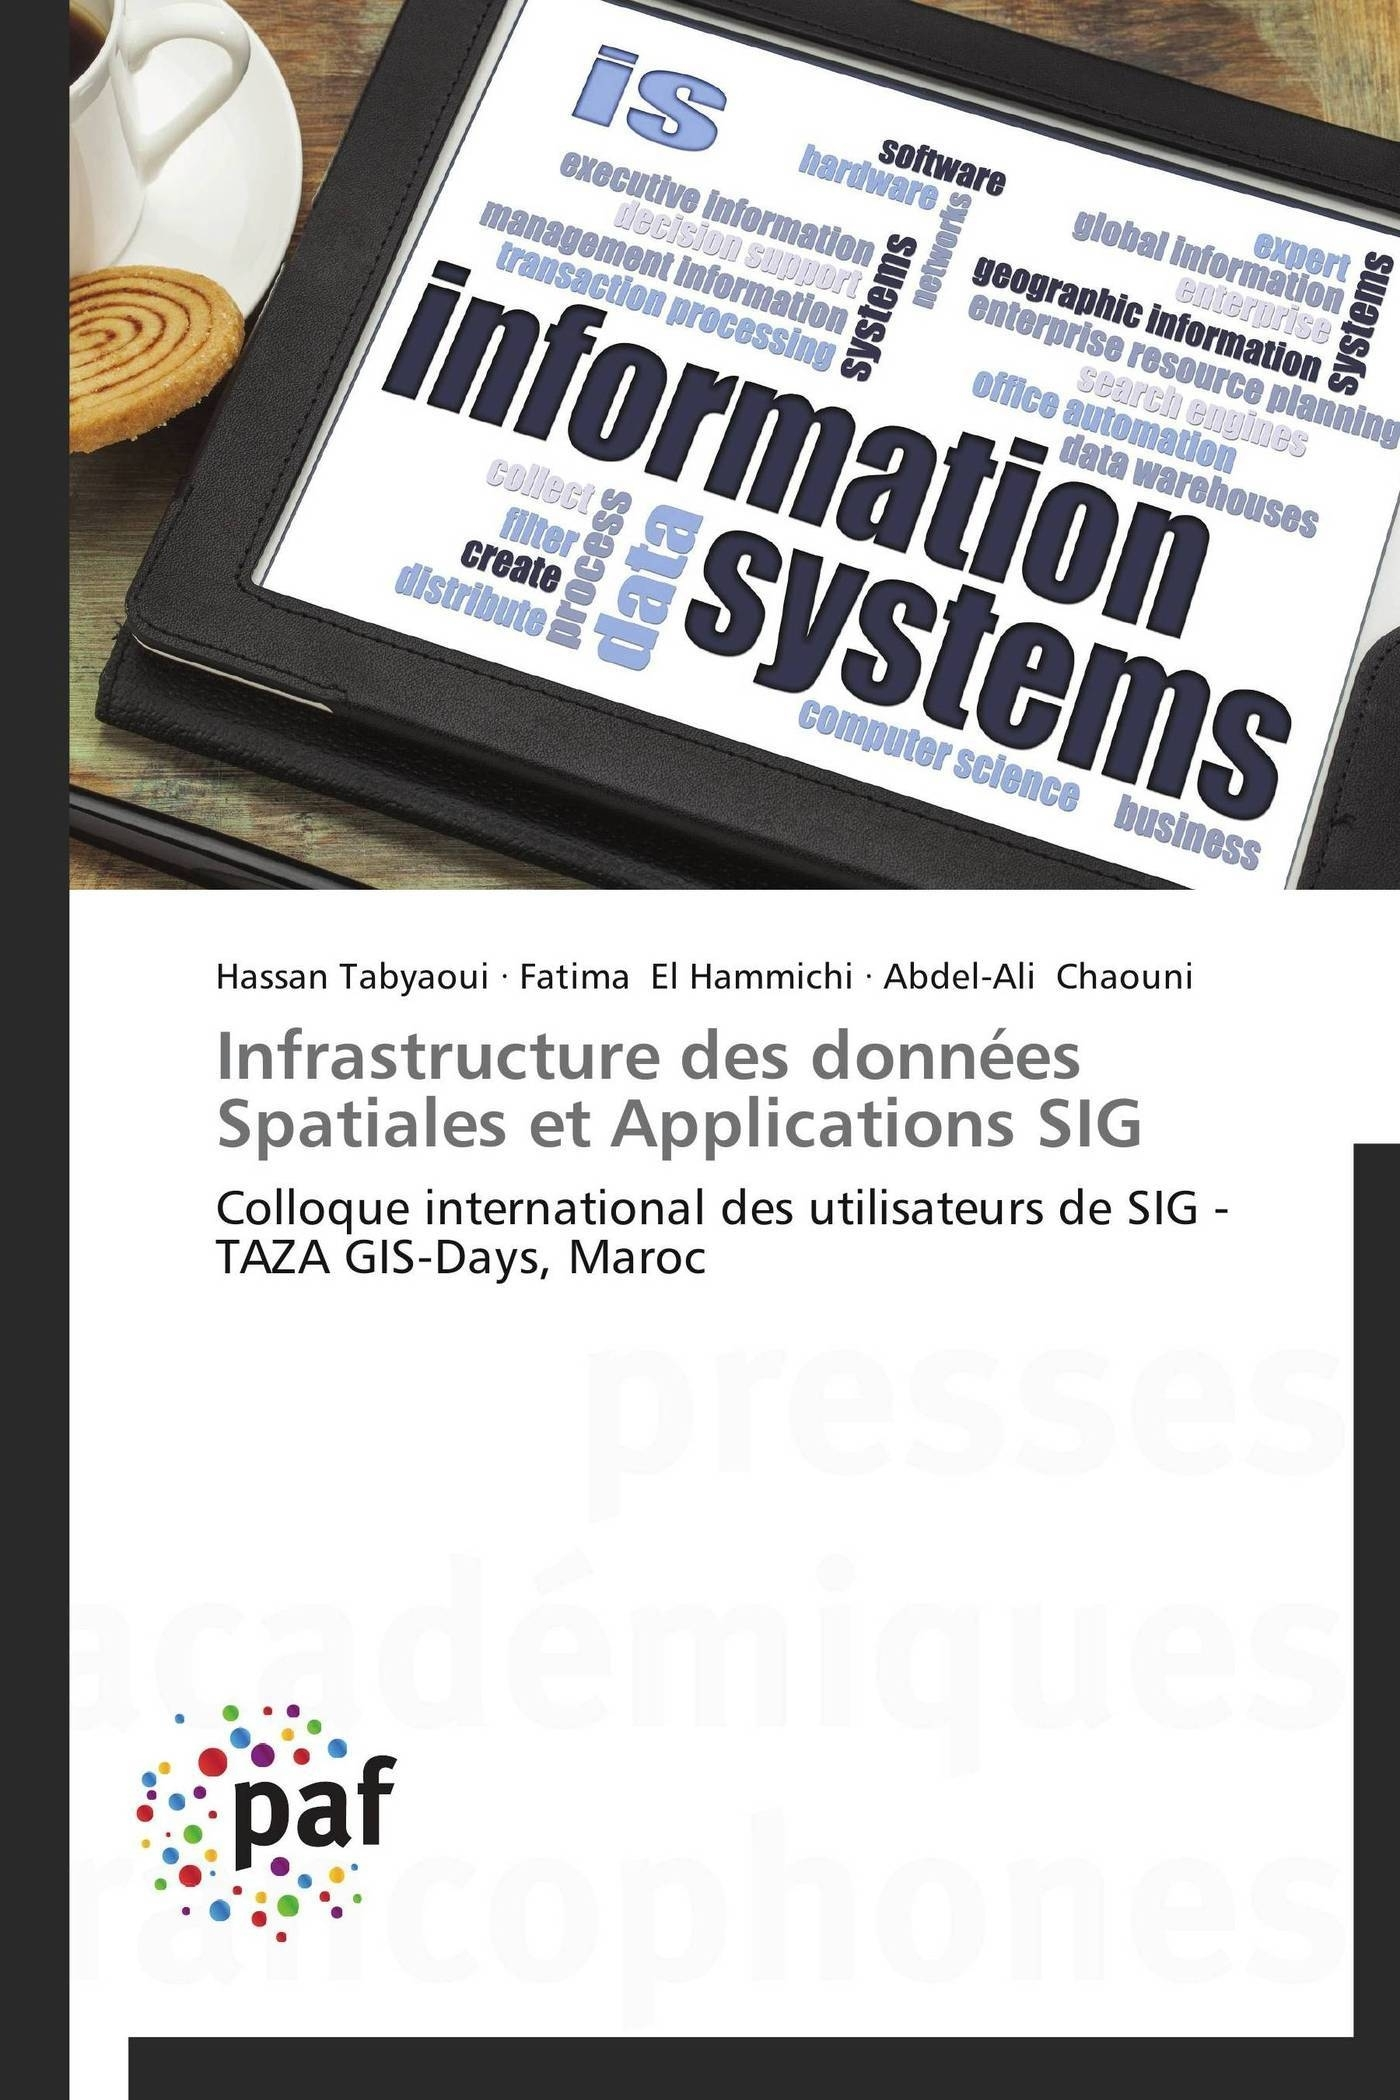 INFRASTRUCTURE DES DONNEES SPATIALES ET APPLICATIONS SIG